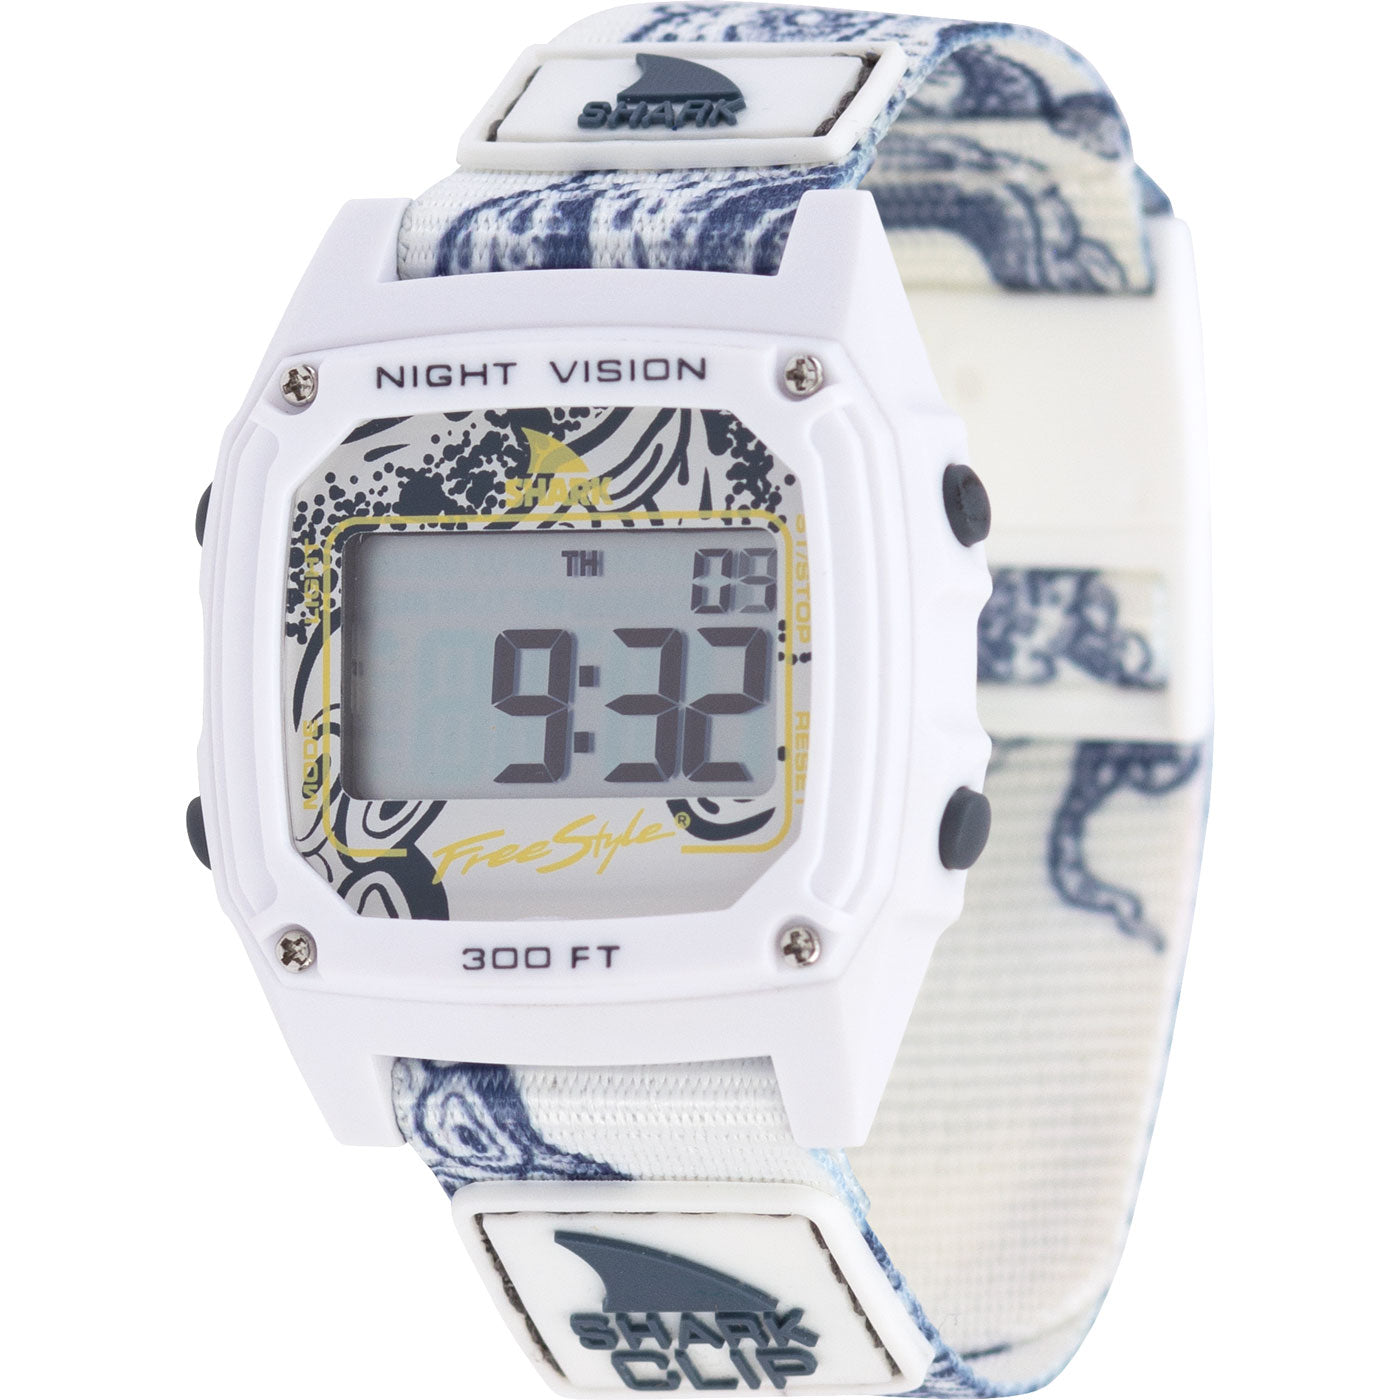 Freestyle Watches | Water Resistant Watches | Home of the Shark Watch